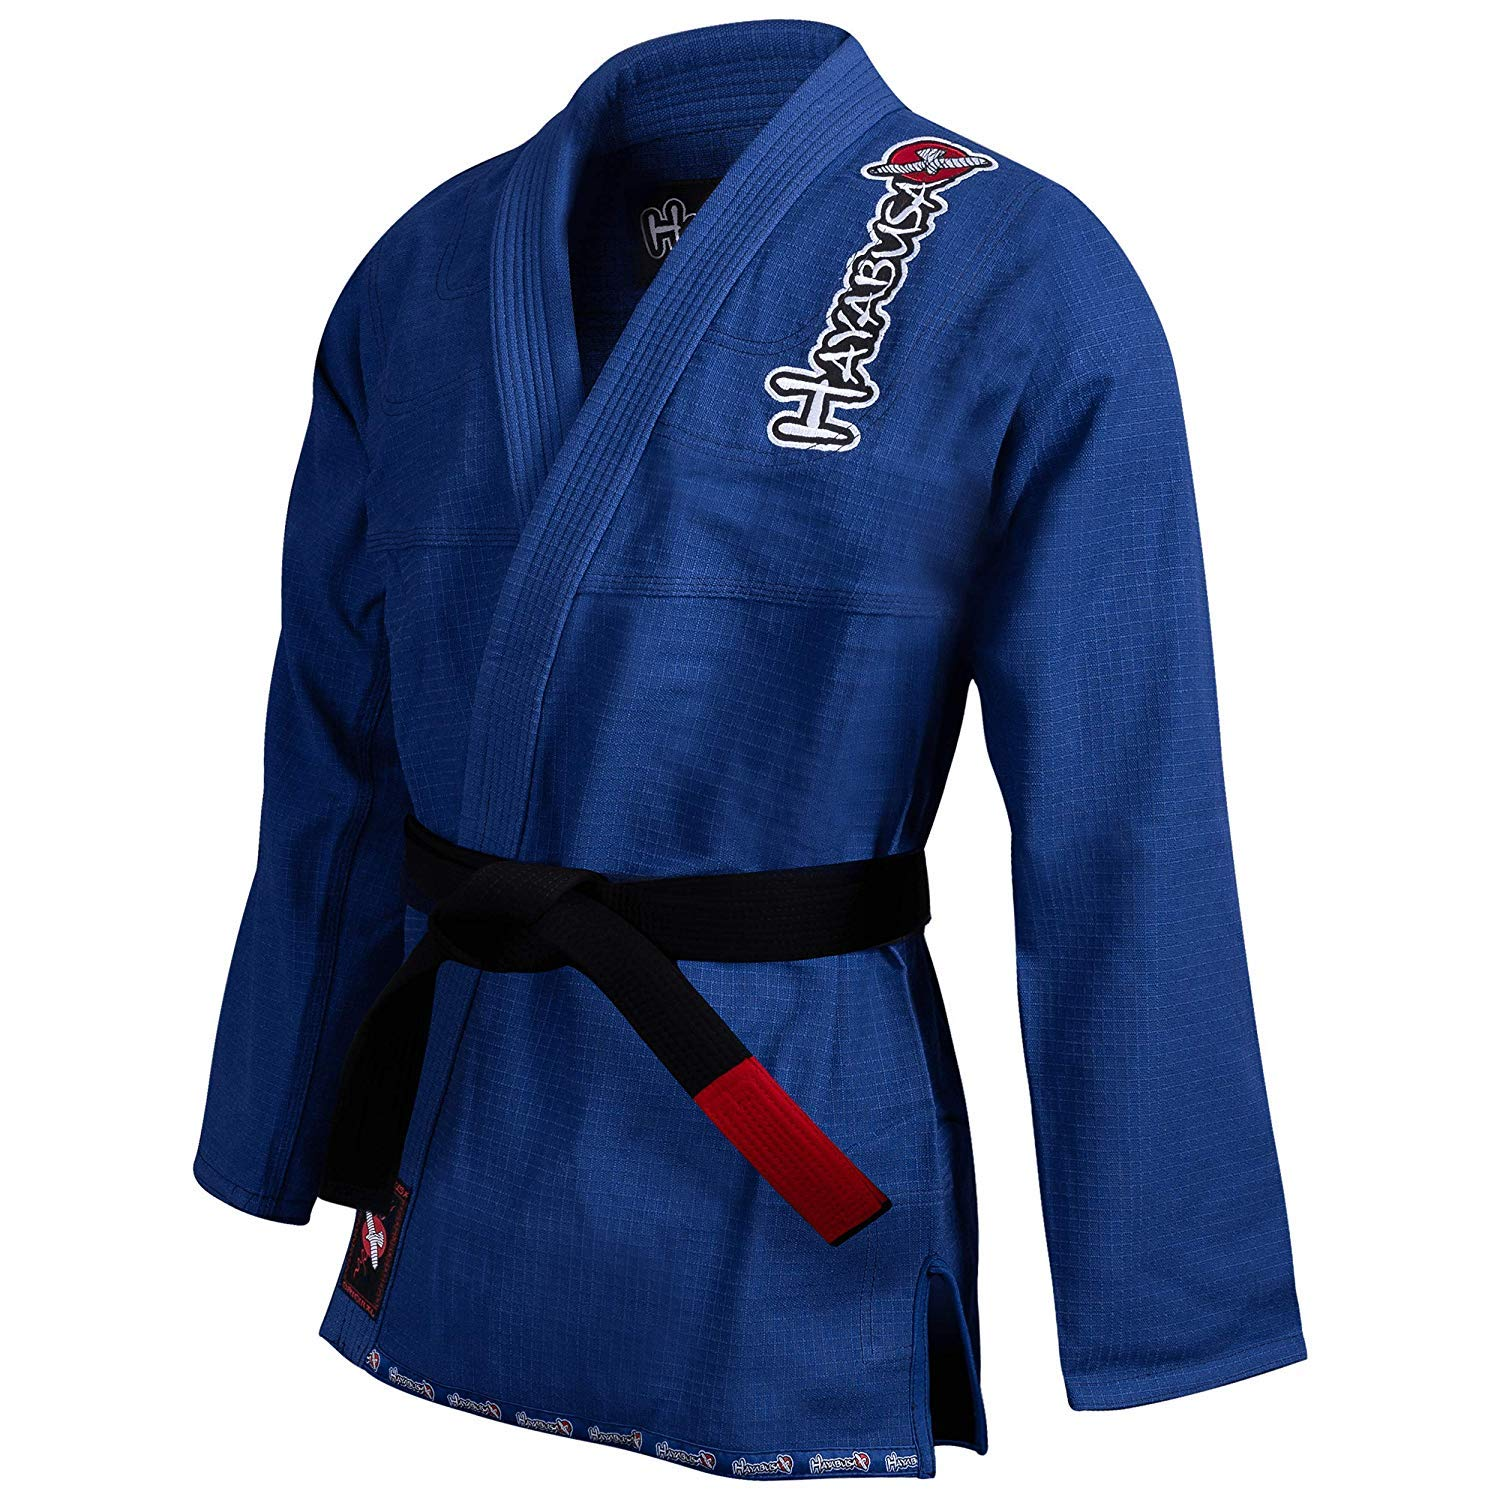 Hayabusa BJJ Gi | Adult Pro Jiu Jitsu Gi - Jacket Only | Blue, A2 by Hayabusa